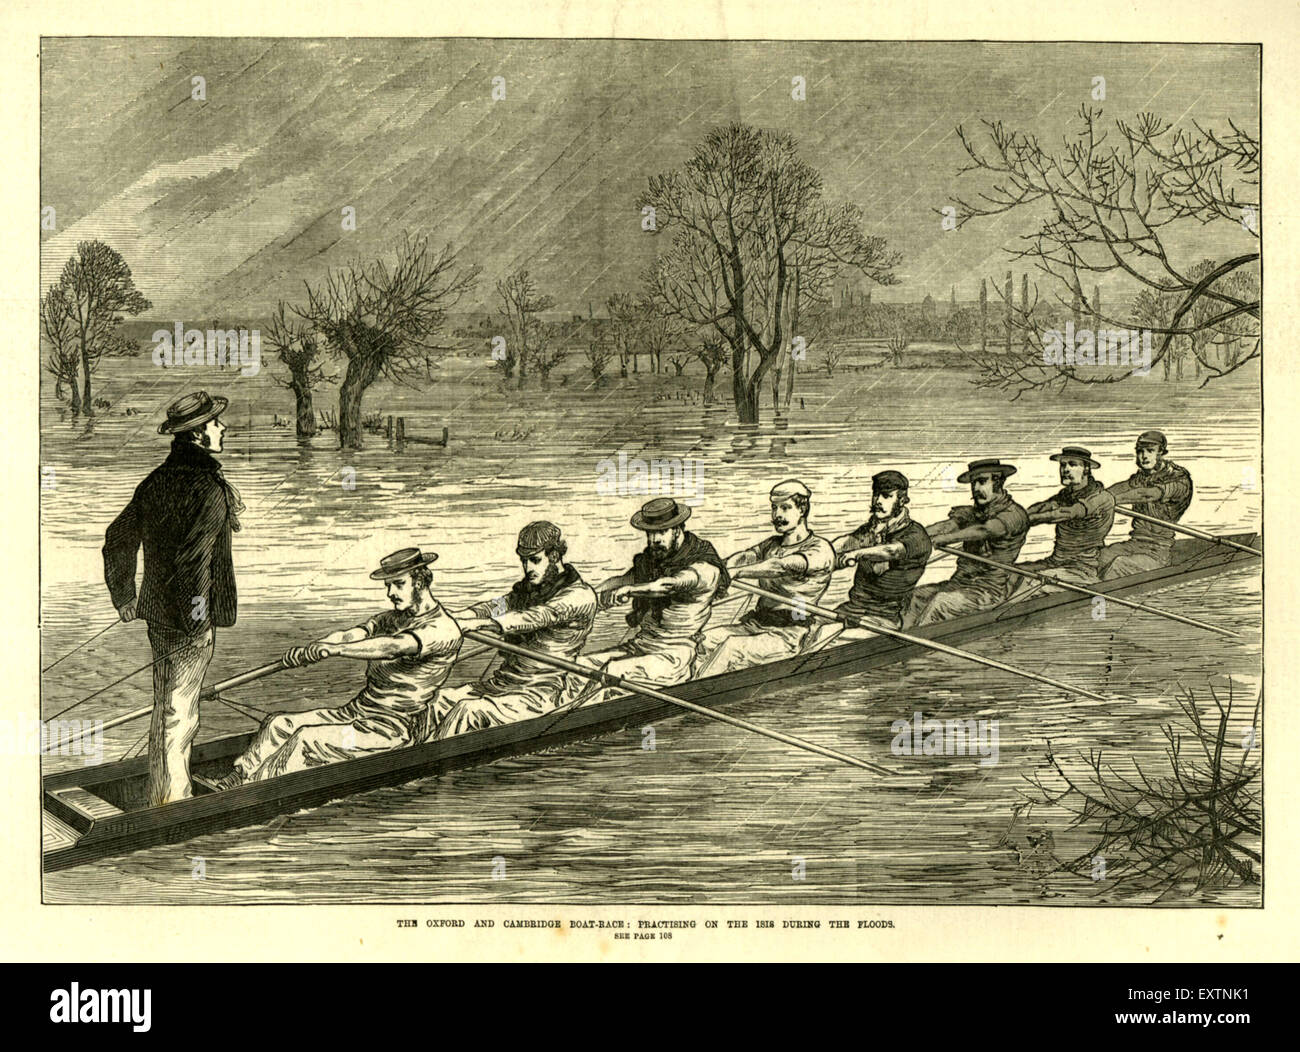 1870s UK Practising for Boat Races during Floods Magazine Plate - Stock Image